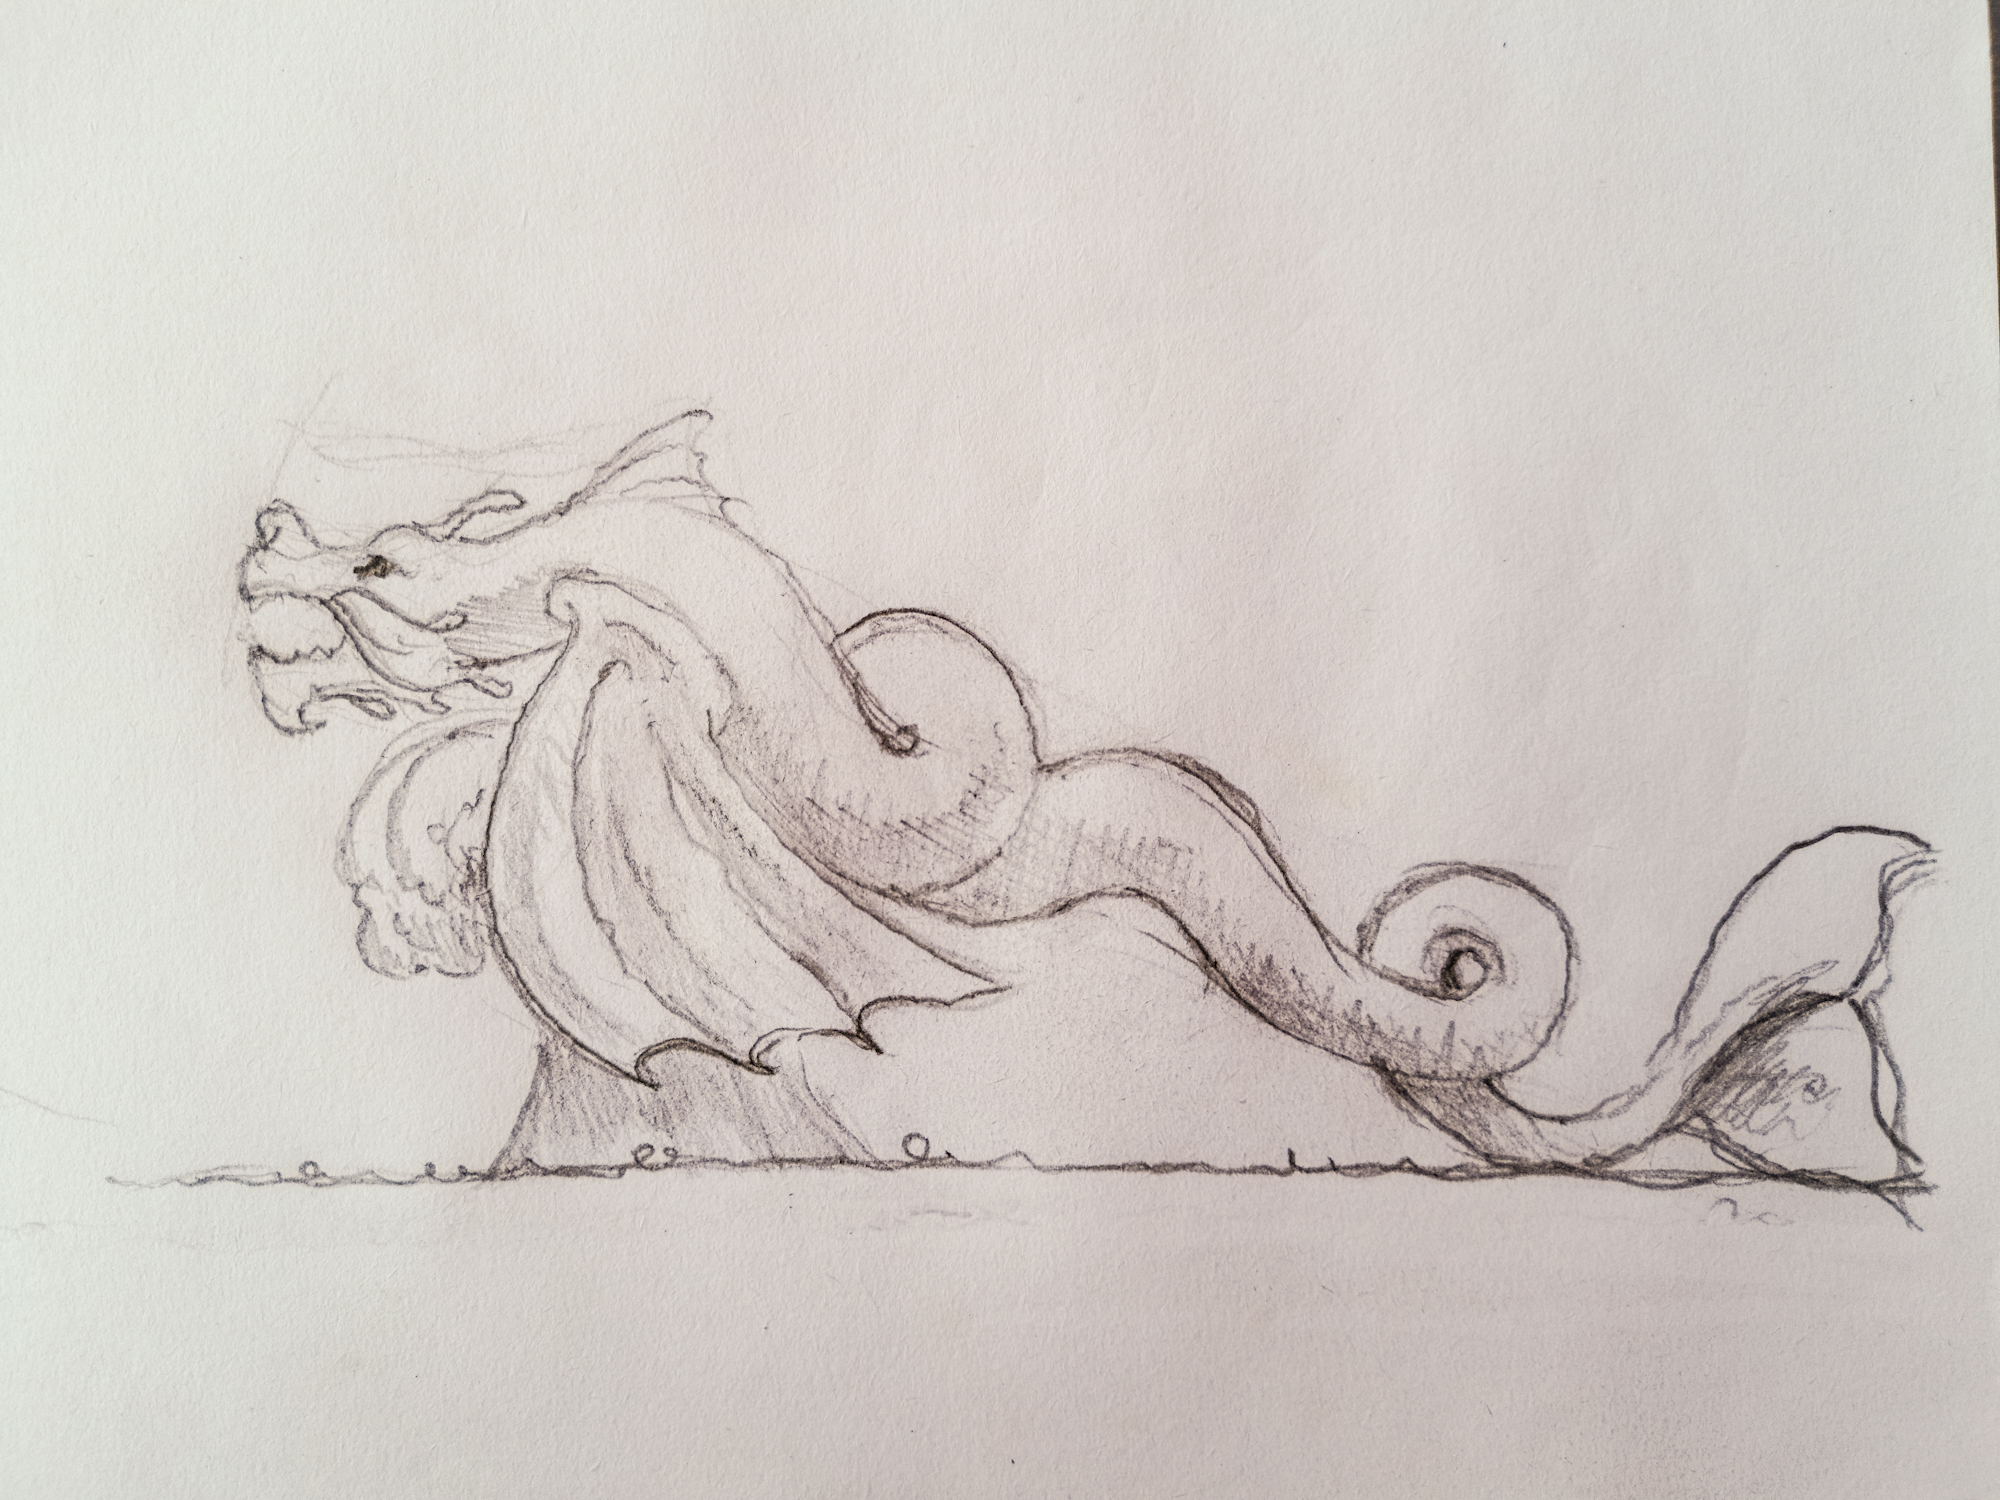 Initial sketch of Water Dragon by Simon O Rourke and Keiji. Learn these skills in our online art courses with Simon.